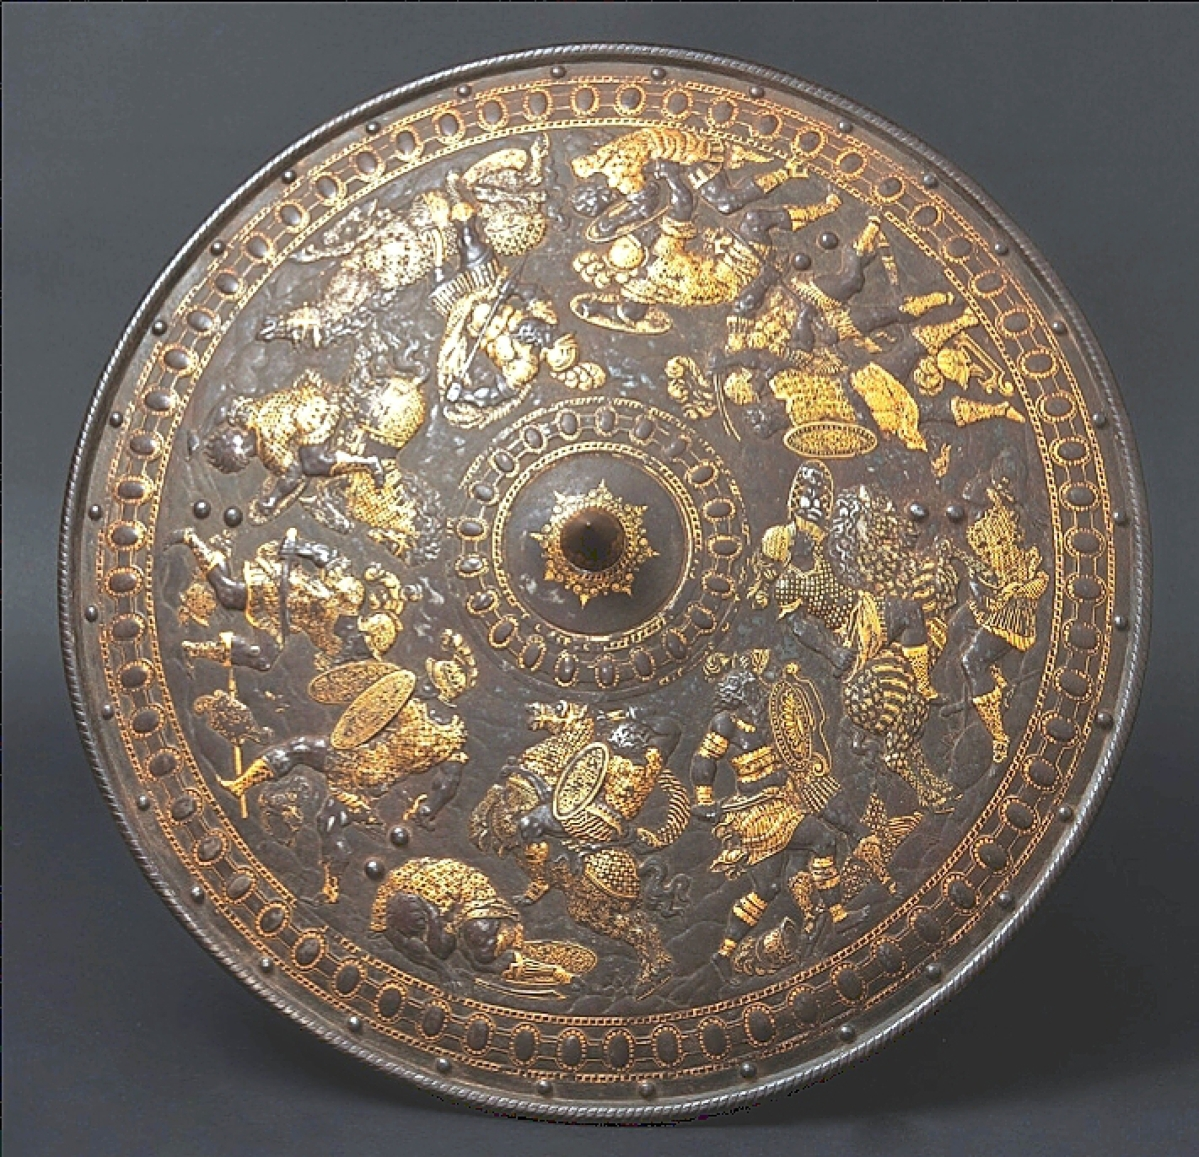 Topping lots of armor on May 27 was this circa 1560-70 Milanese gold-inlaid roundel shield that retained traces of the original leather lining and handles with remnants of their original red velvet covers. It nearly doubled its starting price and sold for $51,827.